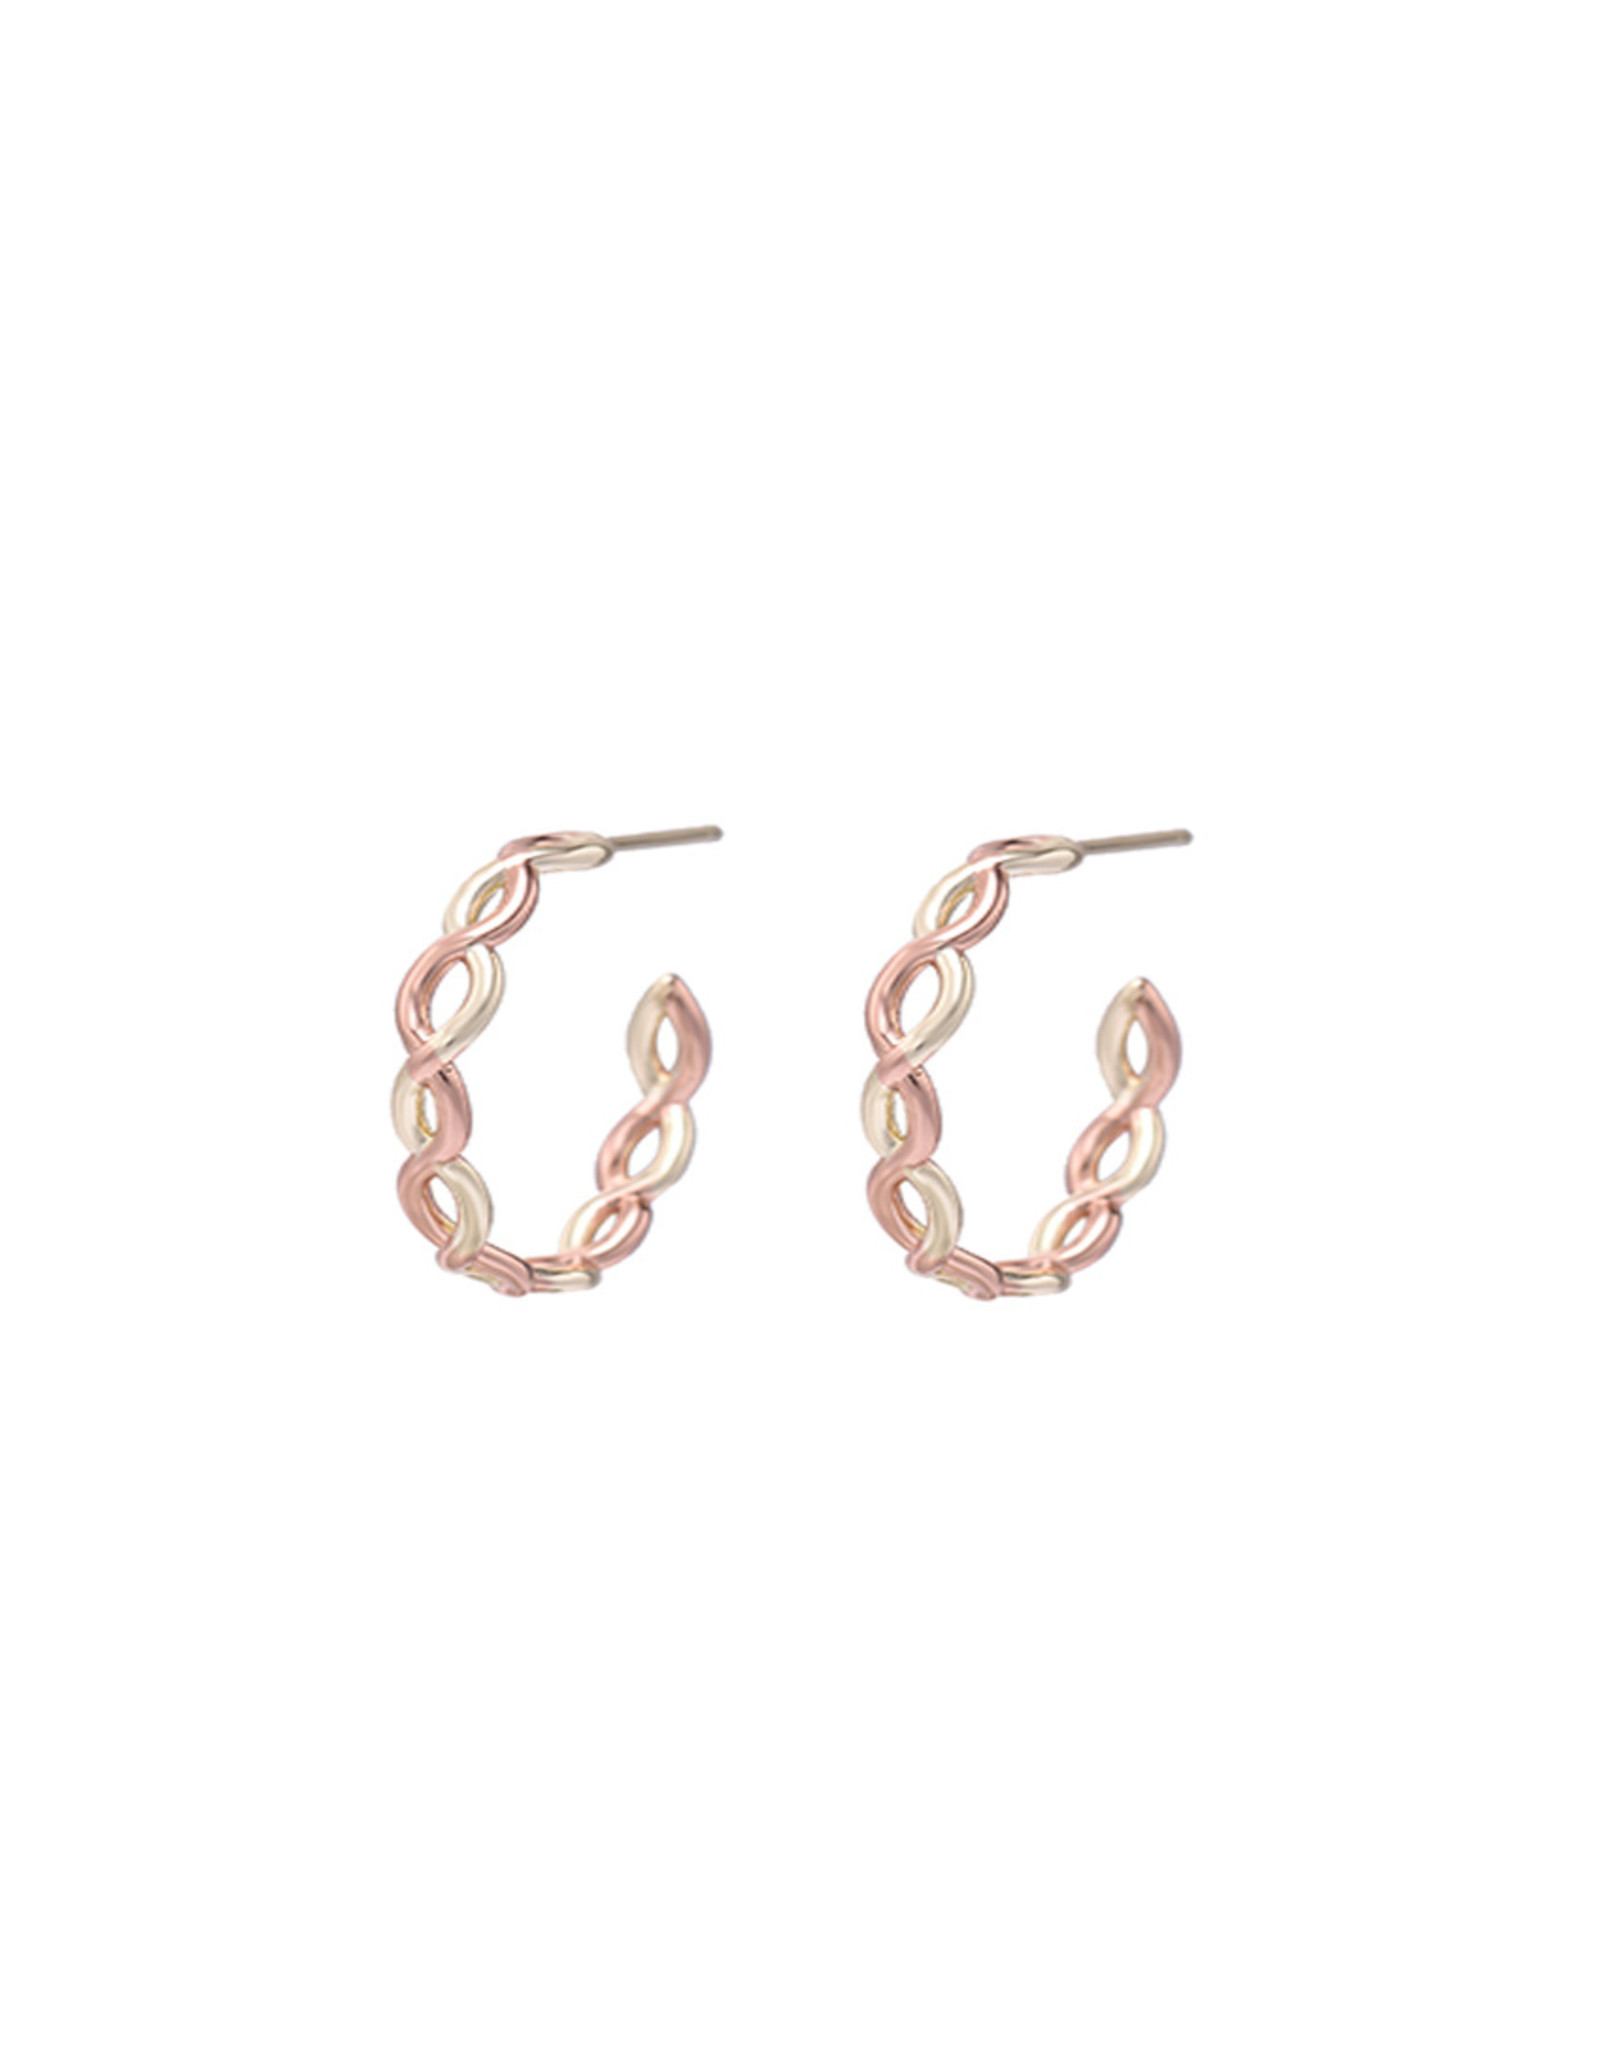 Natalie Wood Designs Bloom Mini Hoop Earrings - Gold & Rose Gold